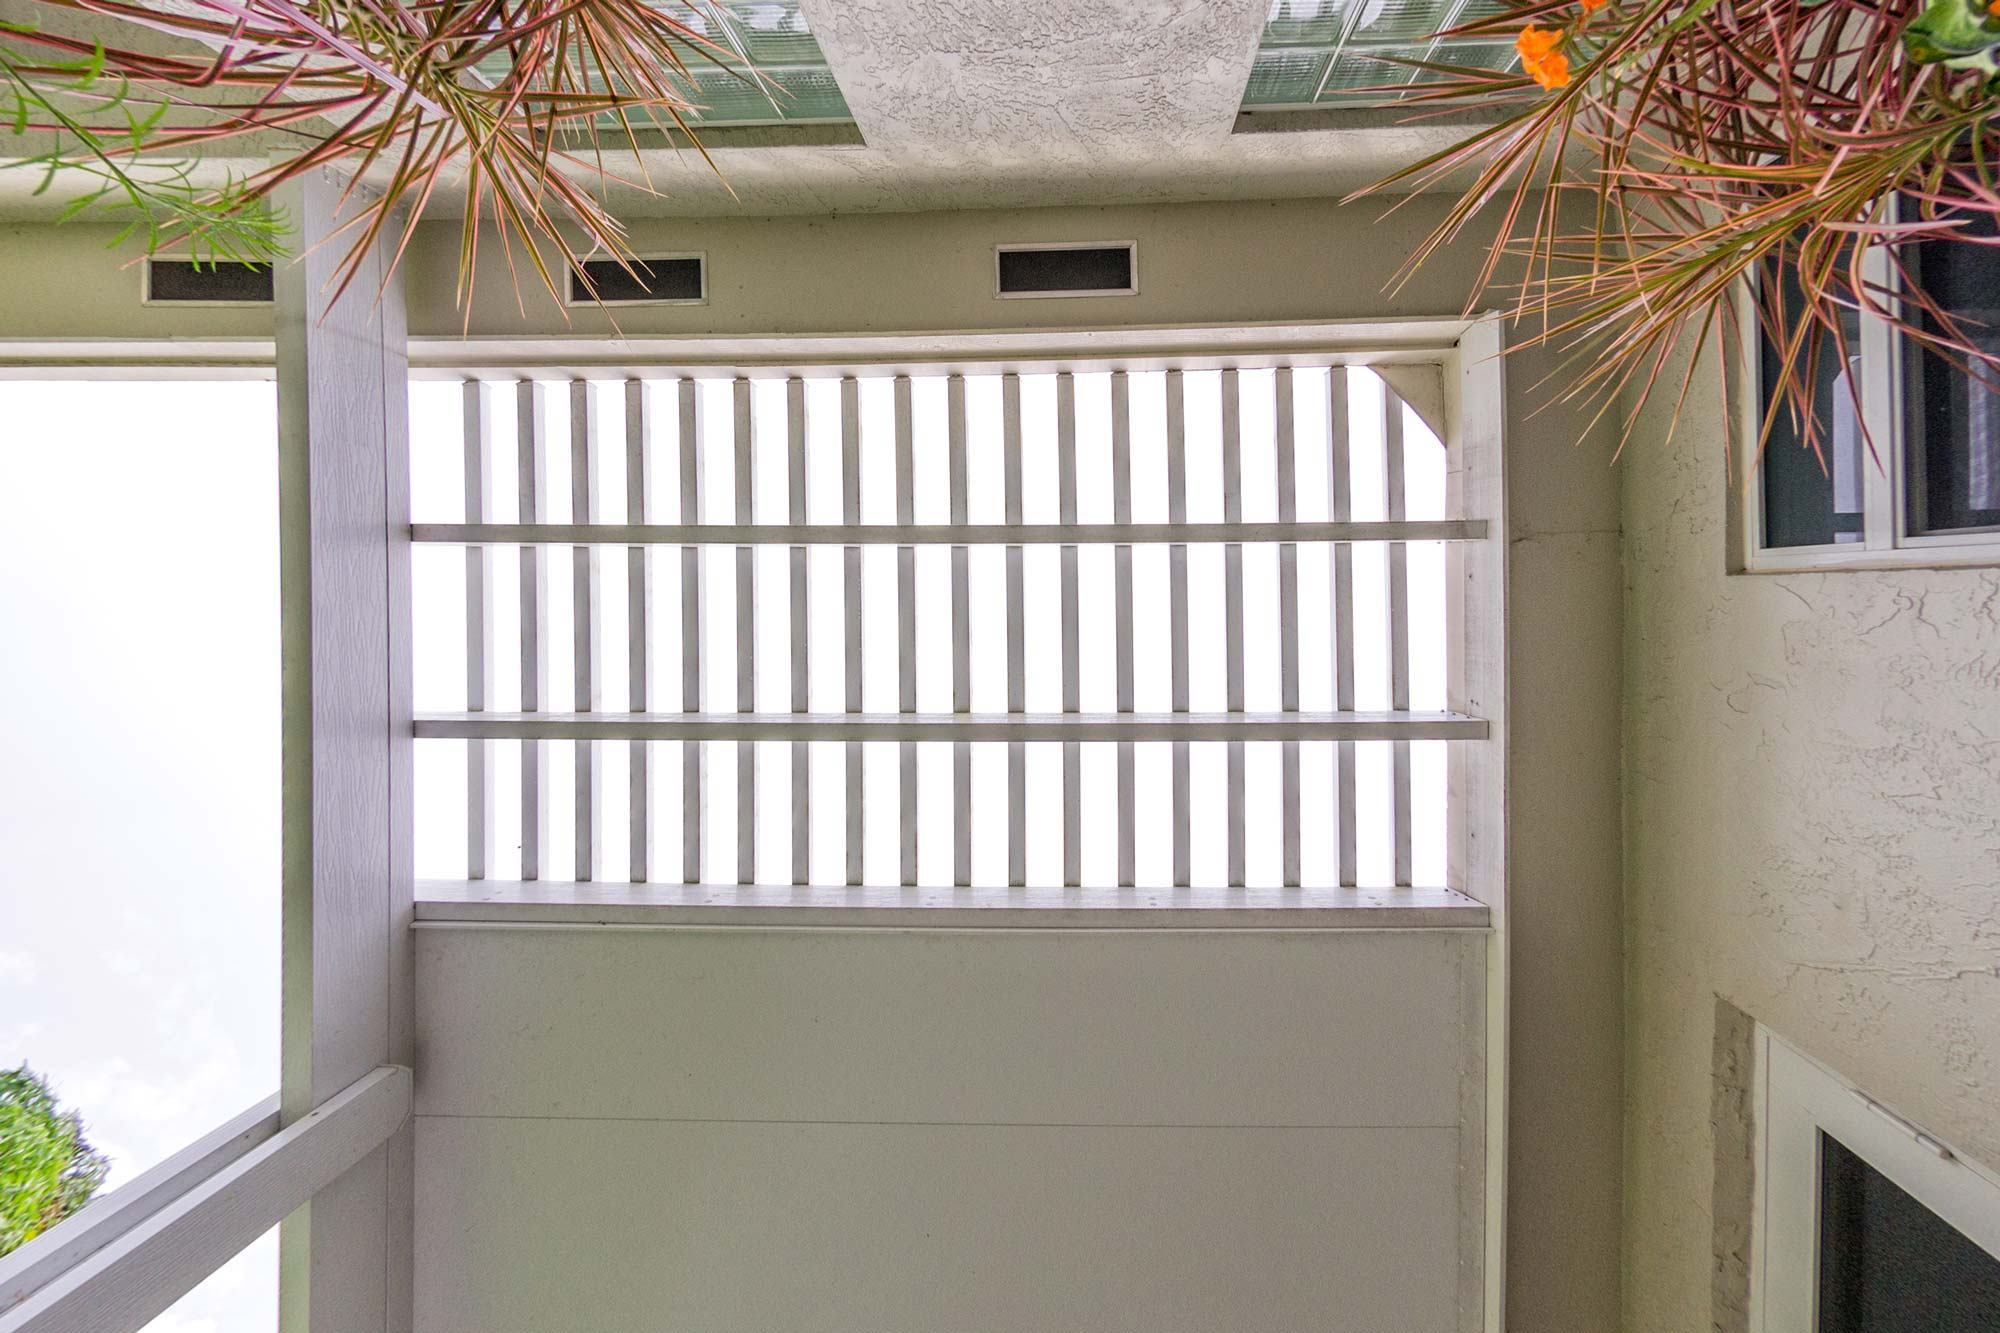 This-true-shade-trellis-with-50-coverage-allows-light-into-the-space-while-keeping-it-nice-and-cool